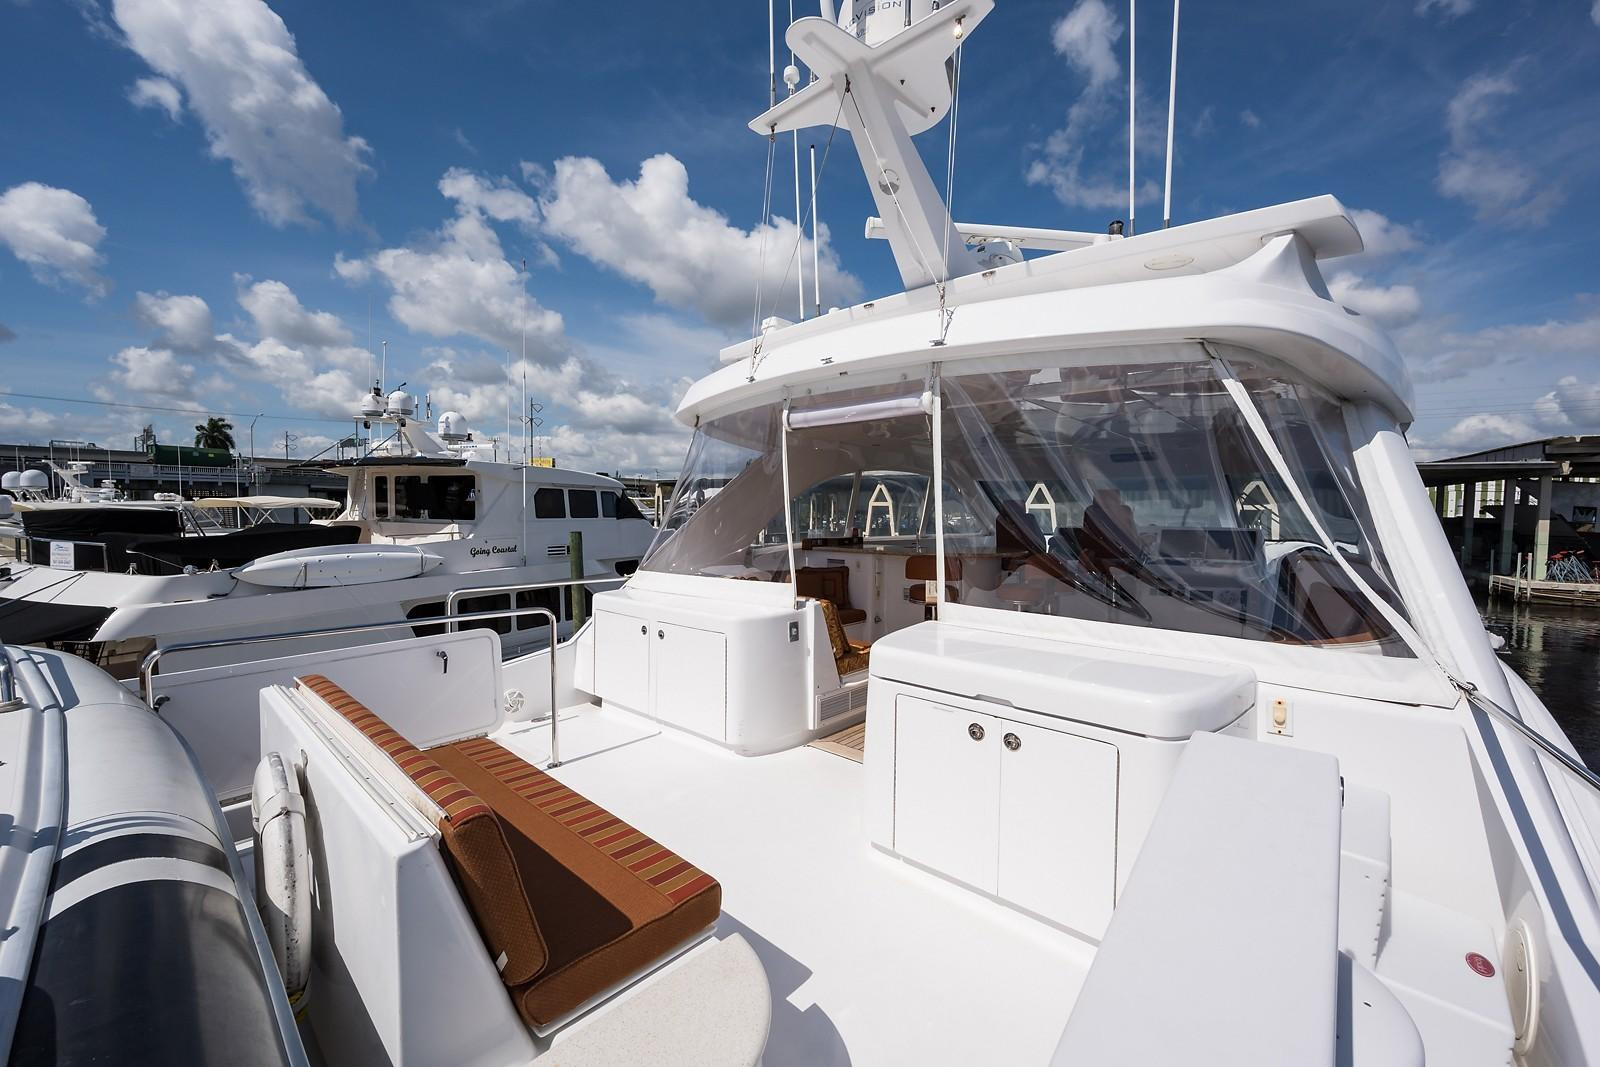 72 ft Hatteras 72 Motor Yacht Boat Deck Forward to Port